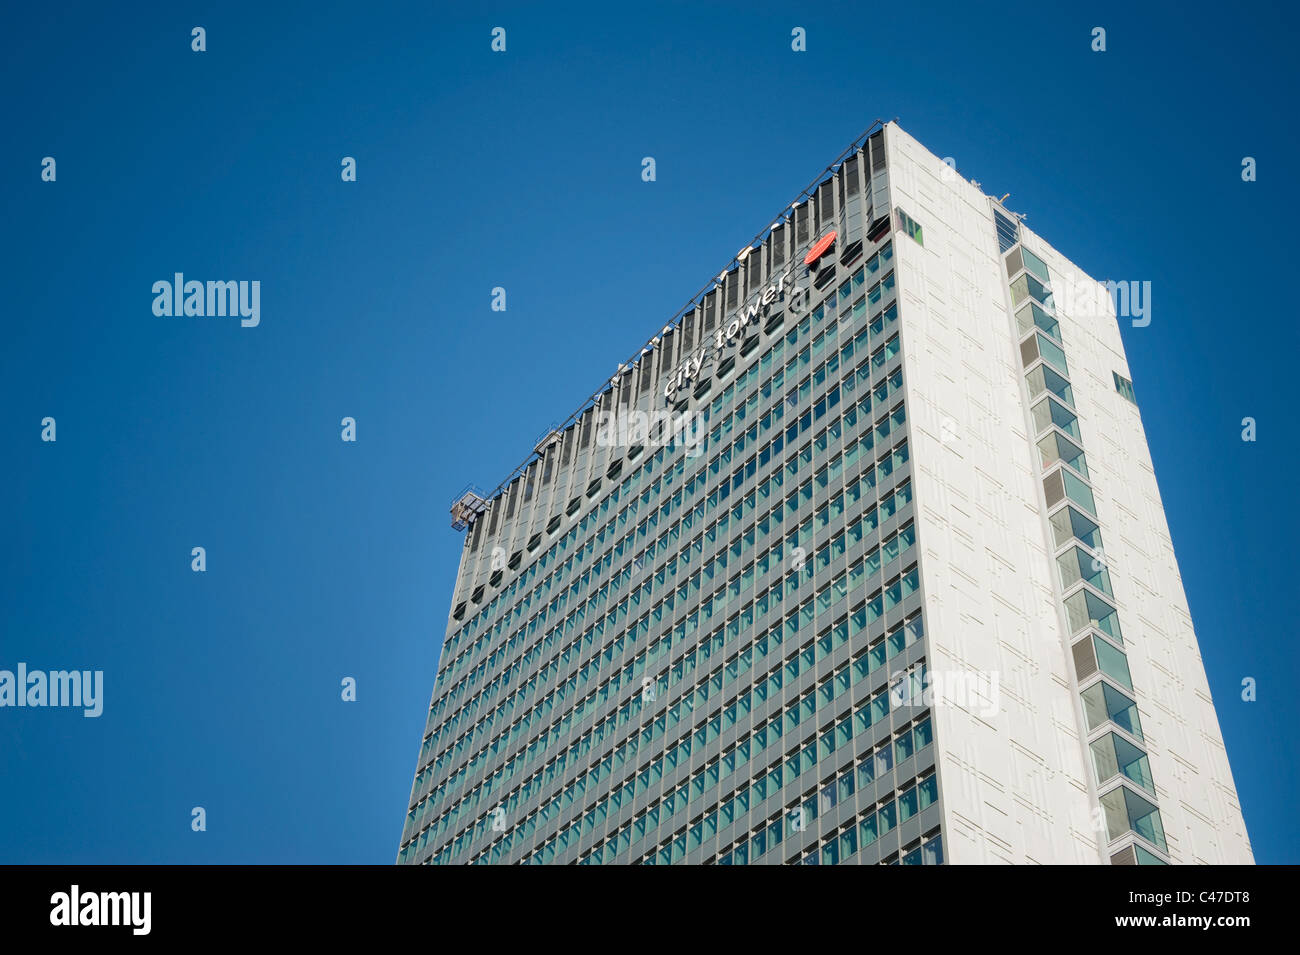 City Tower Piccadilly, Manchester, shot against a clear blue sky. - Stock Image